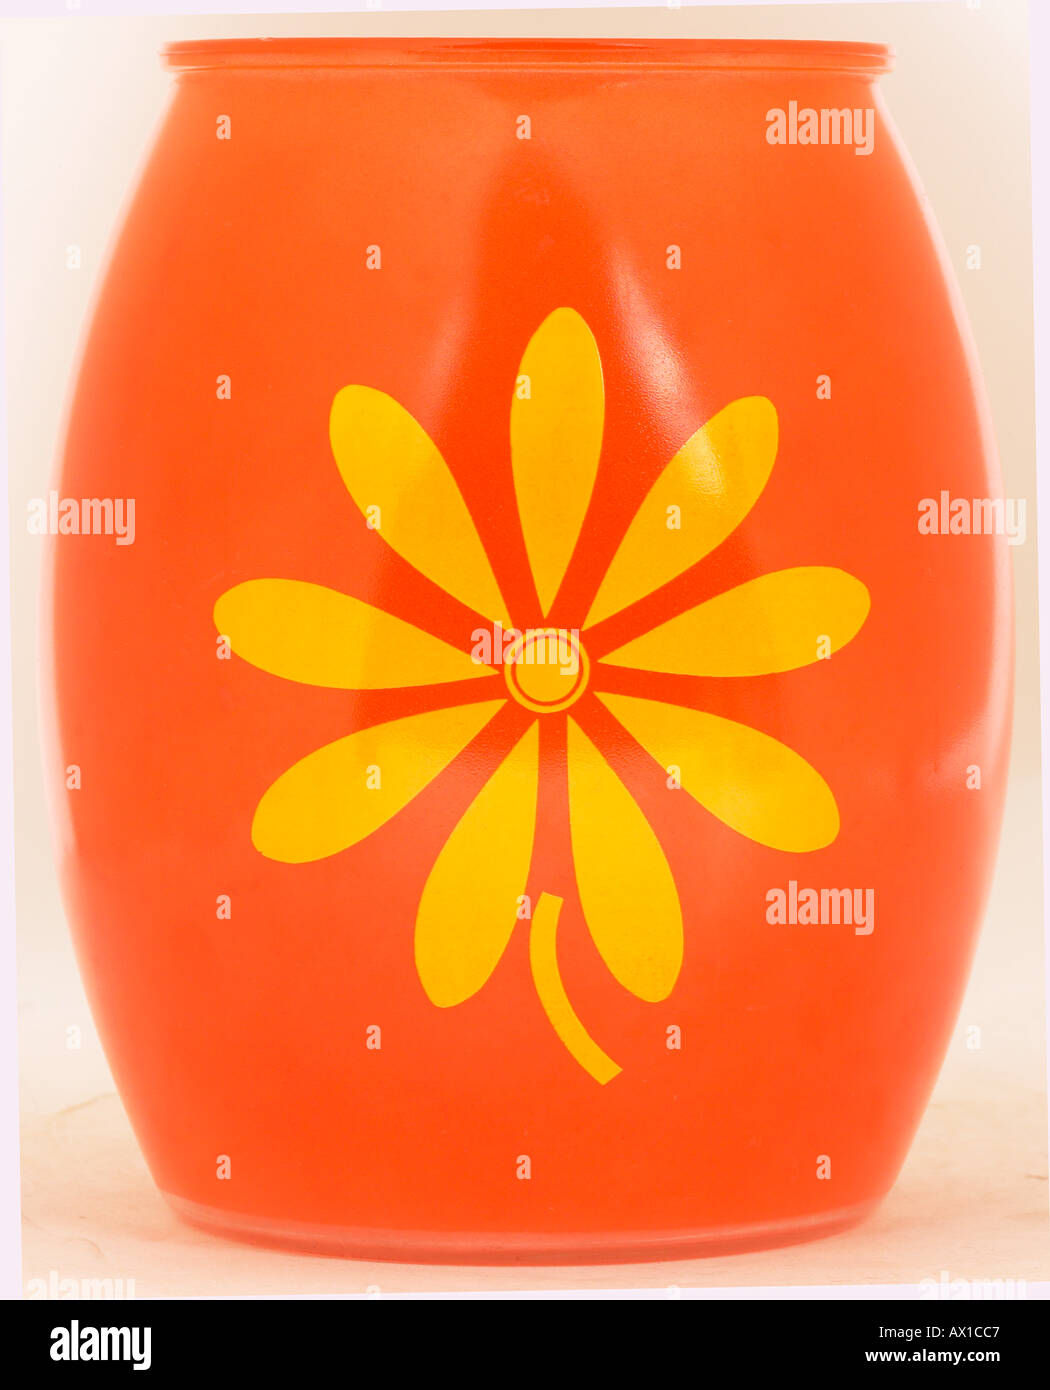 Orange glass vase with painted yellow flower L3 - Stock Image